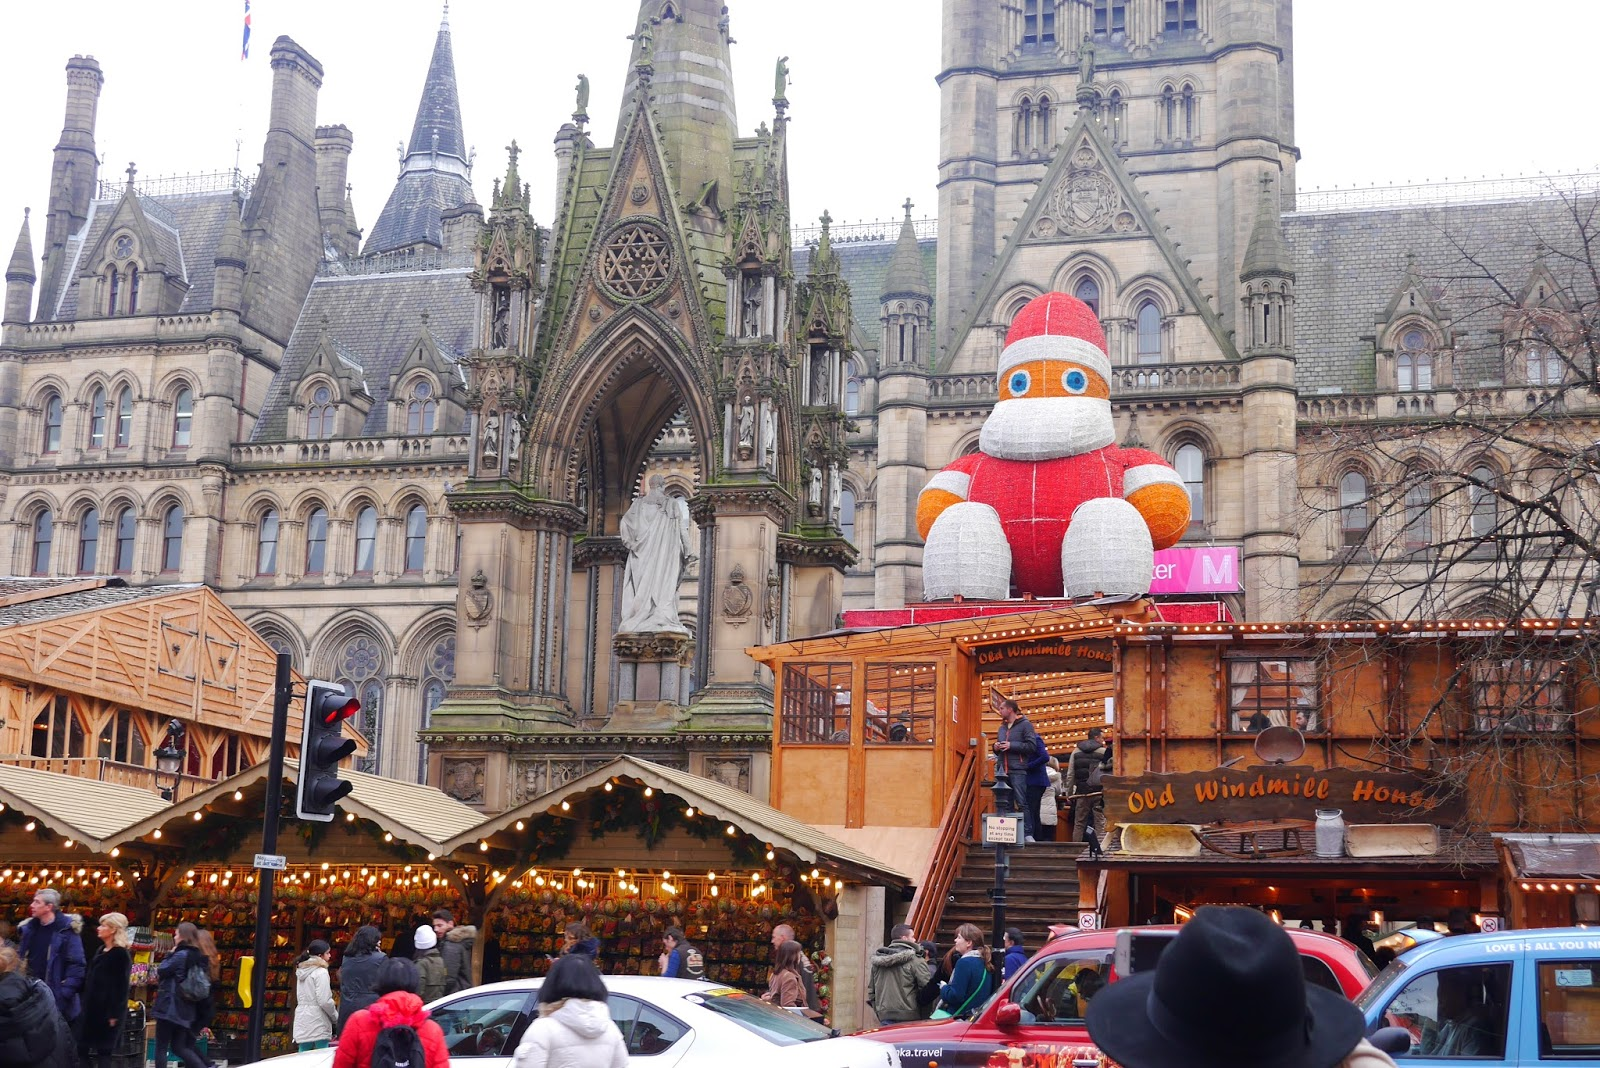 The Manchester Christmas Markets - Inthefrow